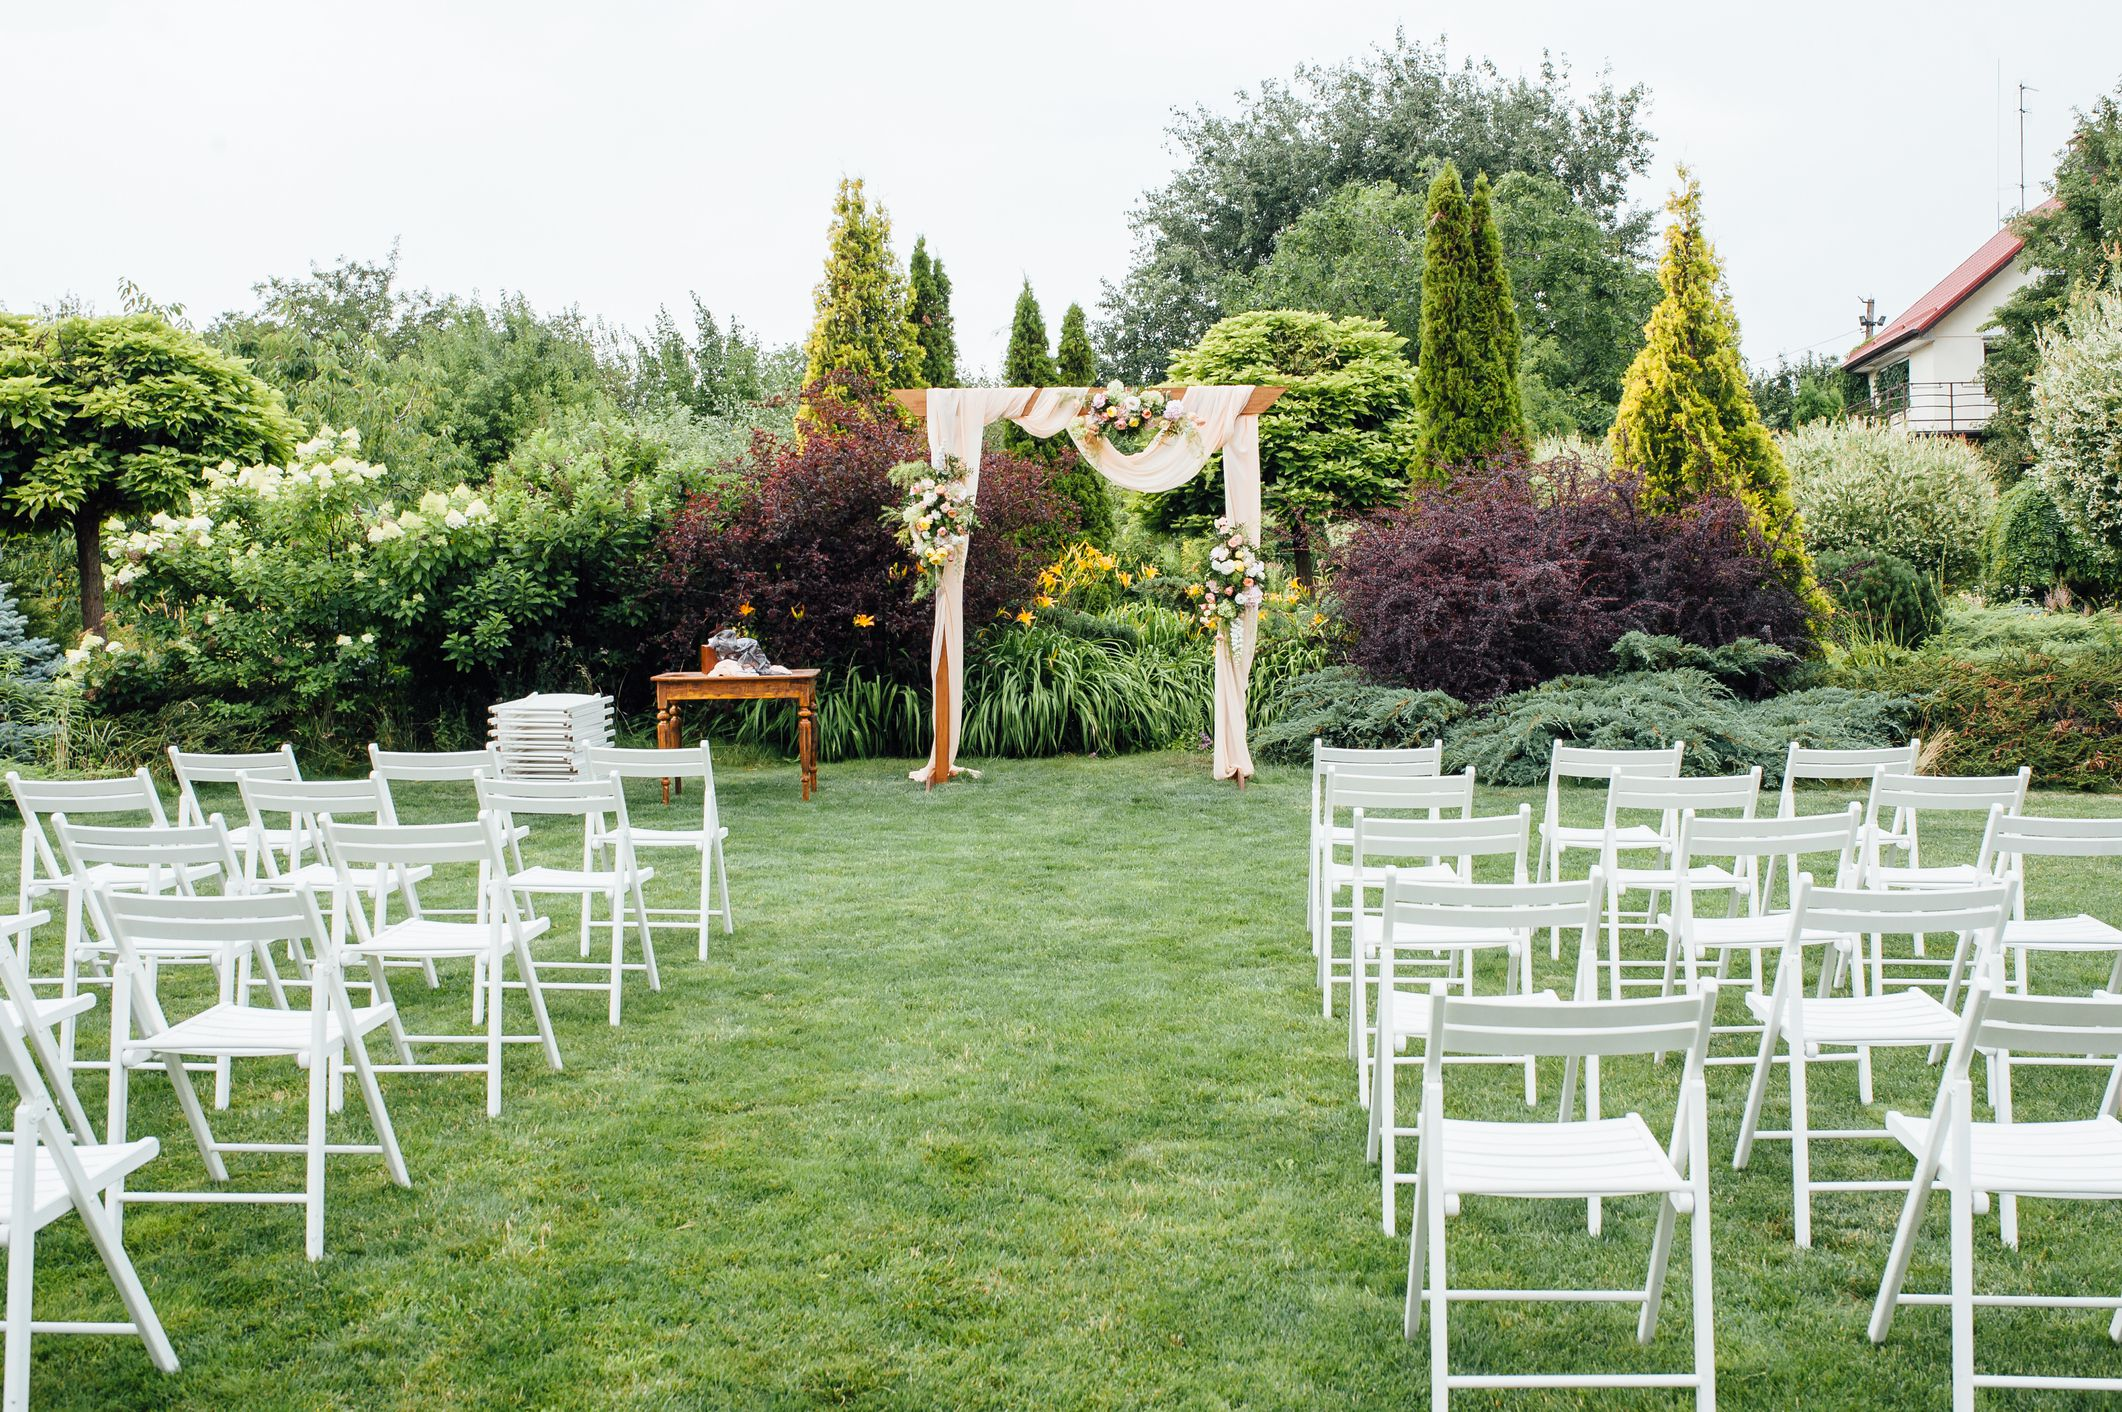 How To Prepare Your Home For A Backyard Wedding